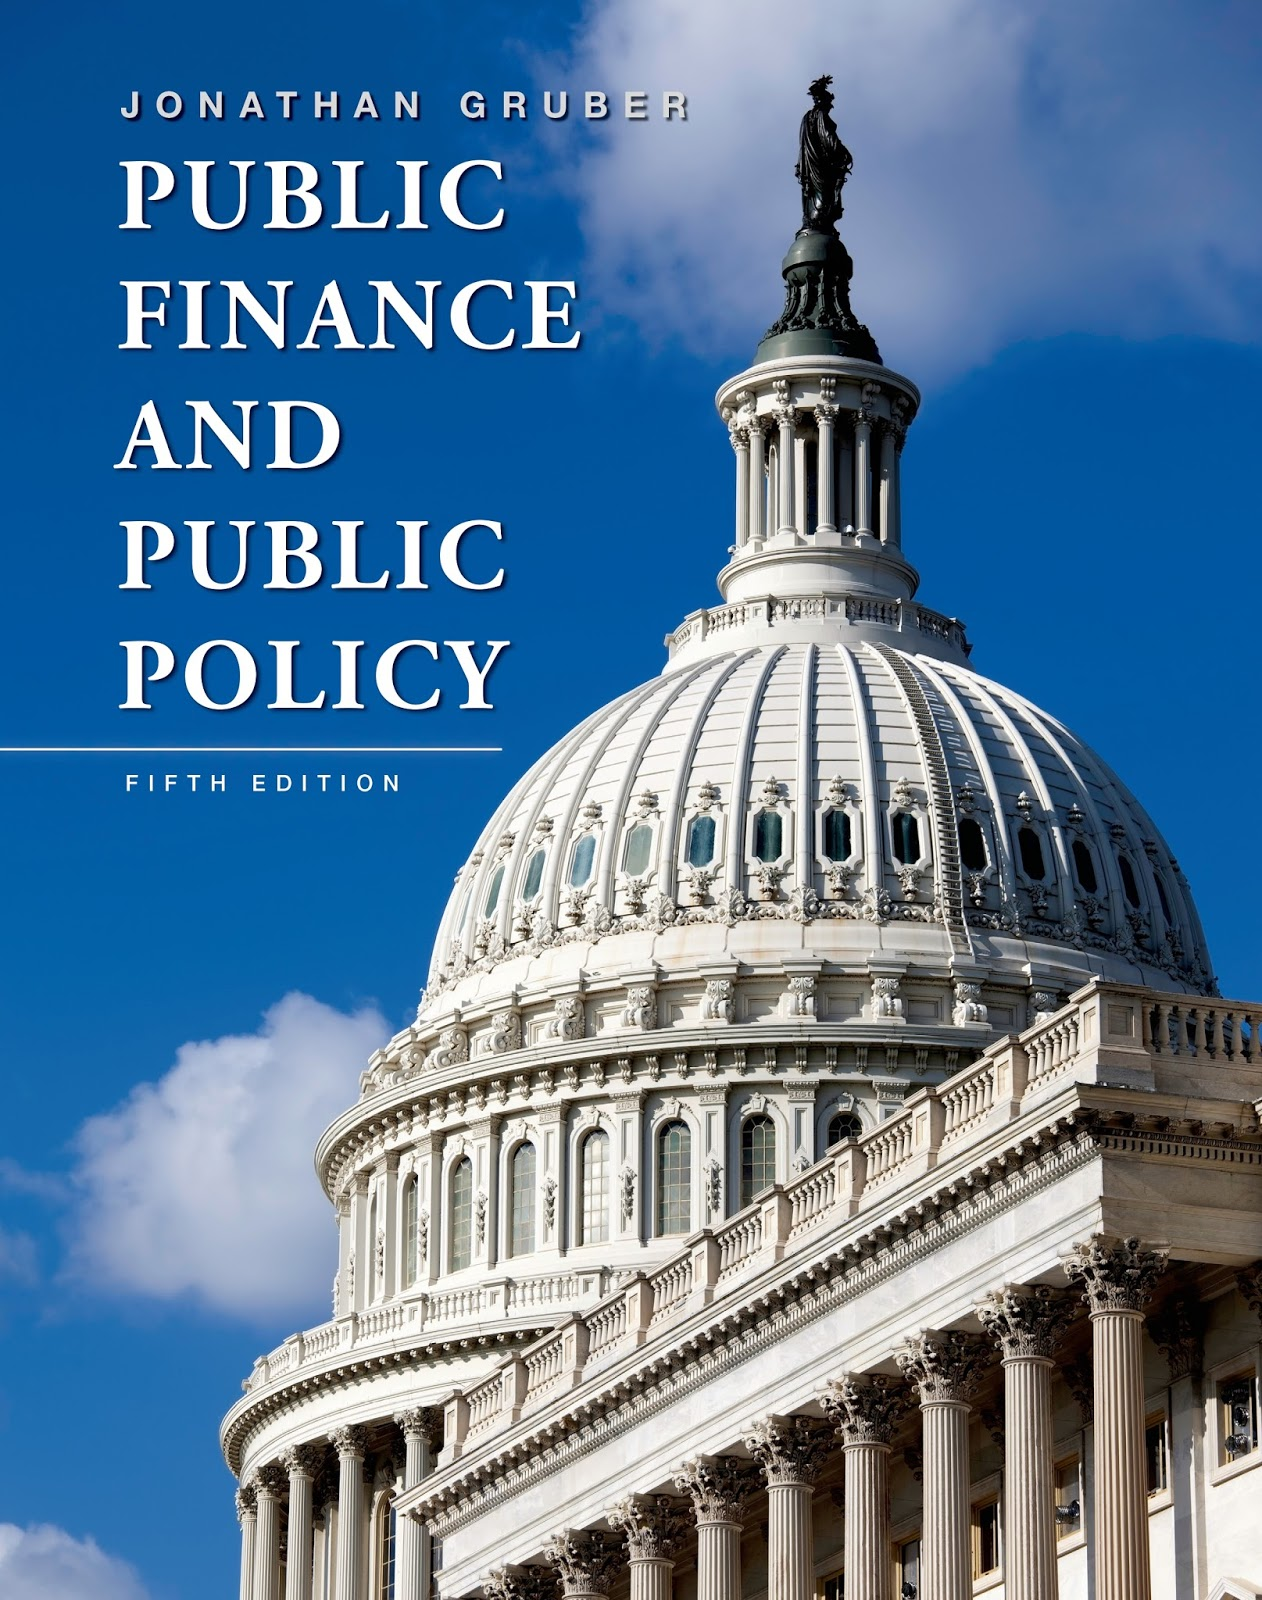 public finance and public policy solutions manual Public finance and public policy 5th edition gruber test bank - test bank, solutions manual, exam bank, quiz bank, answer key for textbook download instantly public finance and public policy 5th edition gruber test bank - test bank, solutions manual, exam bank, quiz bank, answer key for textbook download instantly.